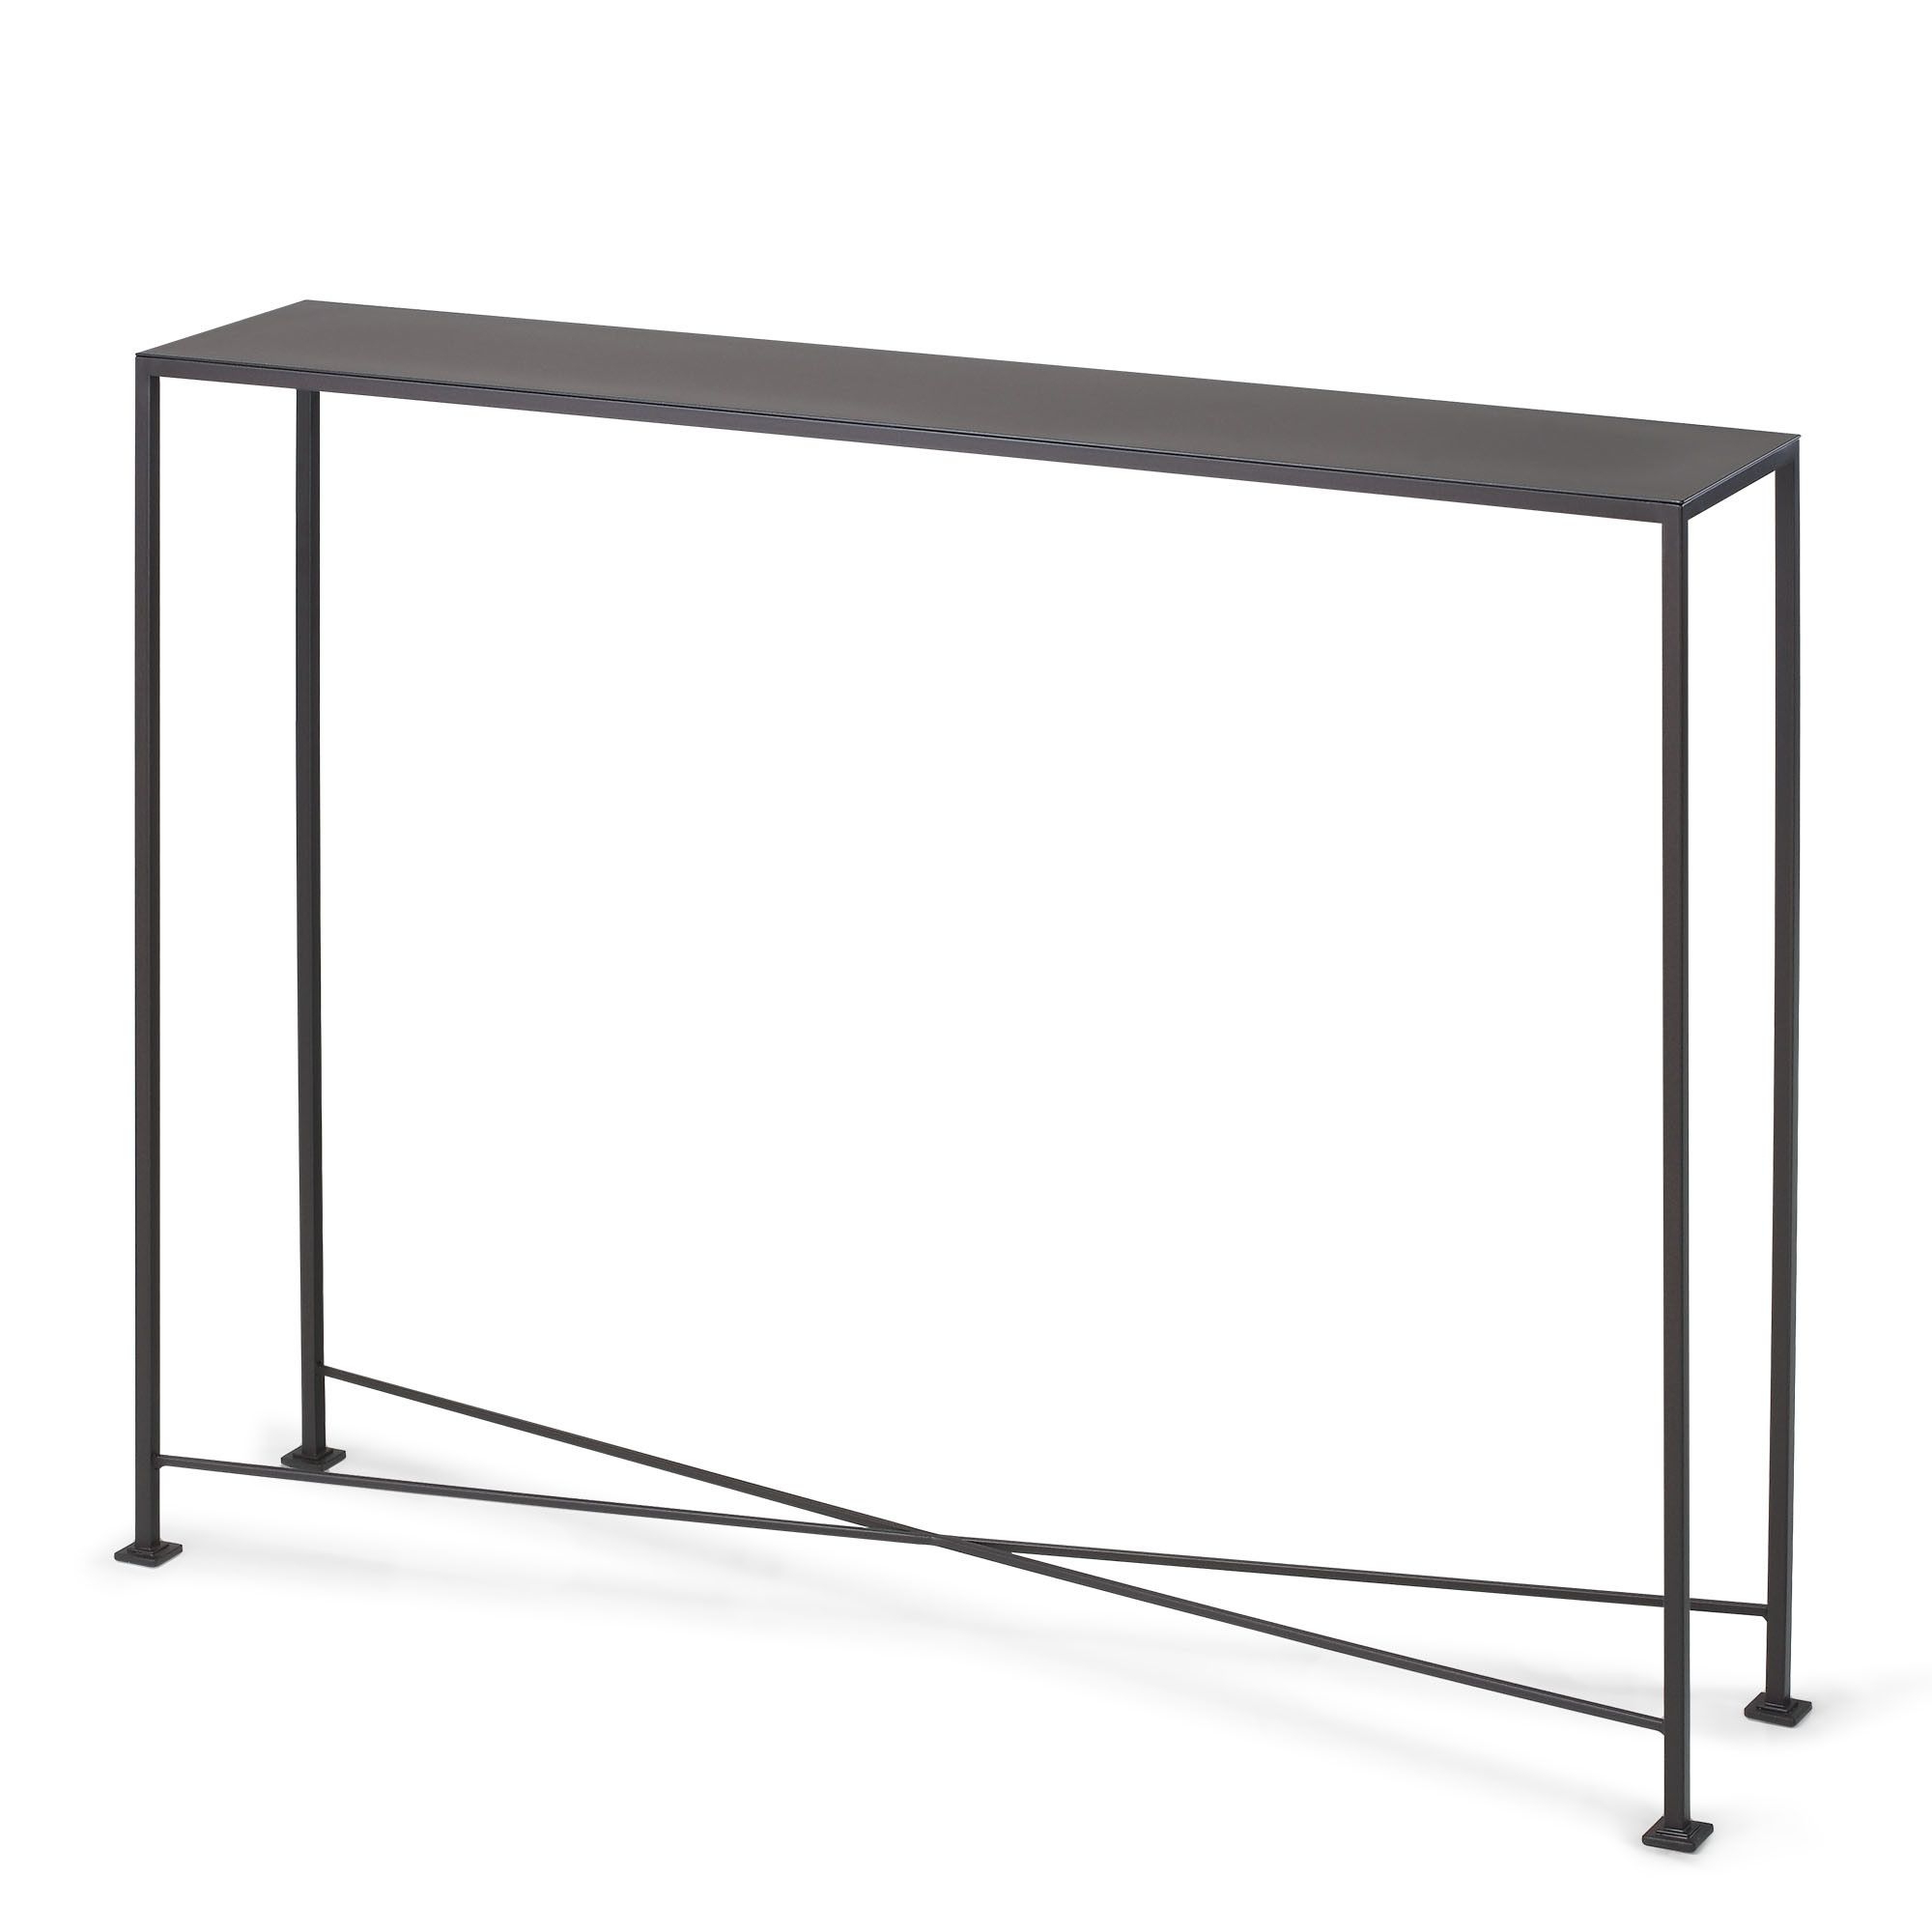 Diversey Metal Console Table   Console Tables, Consoles And Metals Regarding Silviano 60 Inch Iron Console Tables (View 10 of 20)